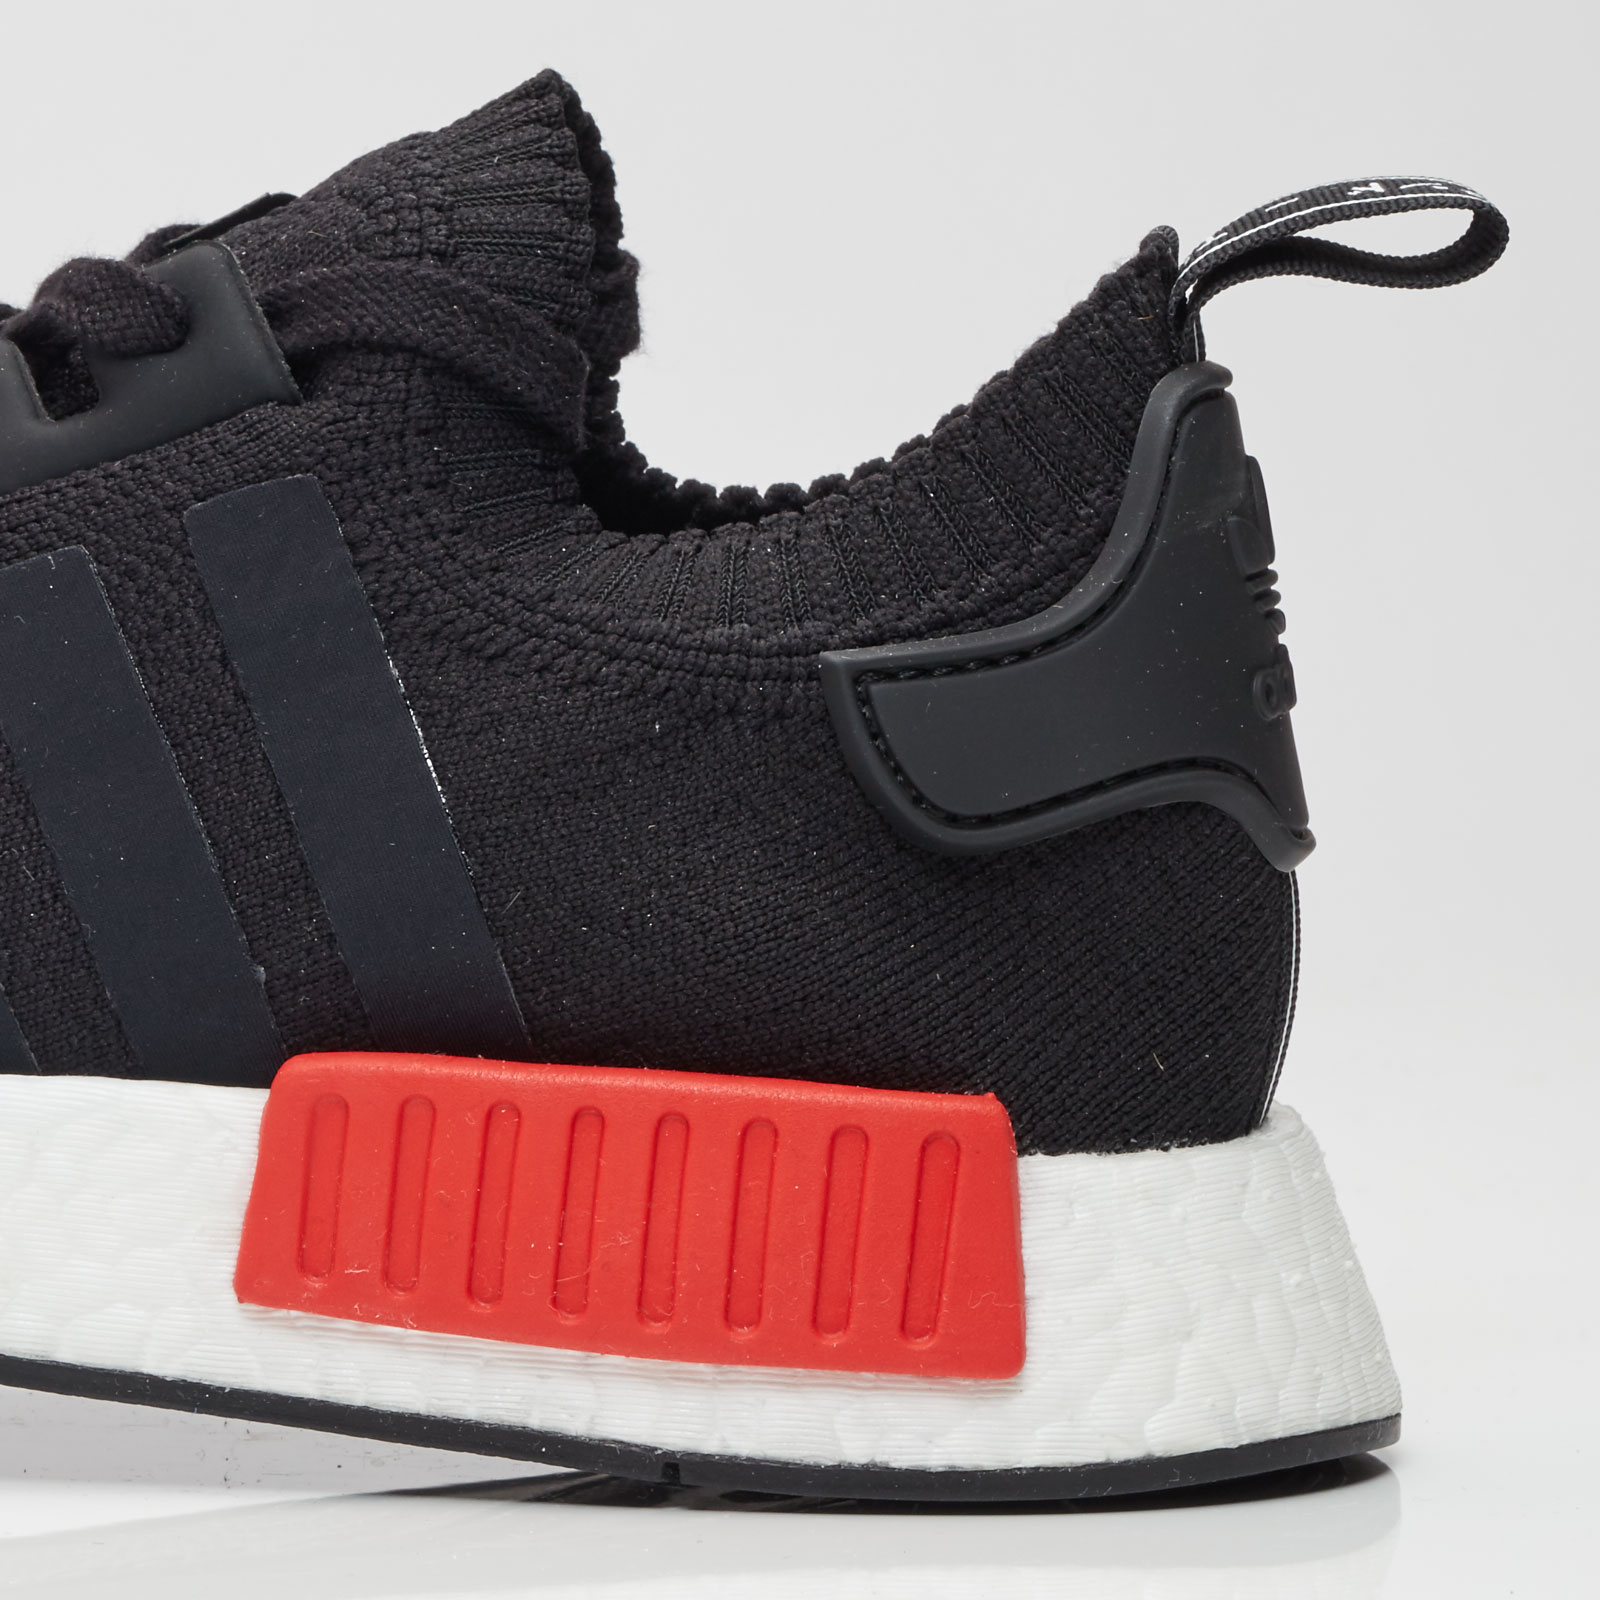 new york 1aed4 5e9ad adidas NMD_R1 PK - S79168 - Sneakersnstuff | sneakers ...